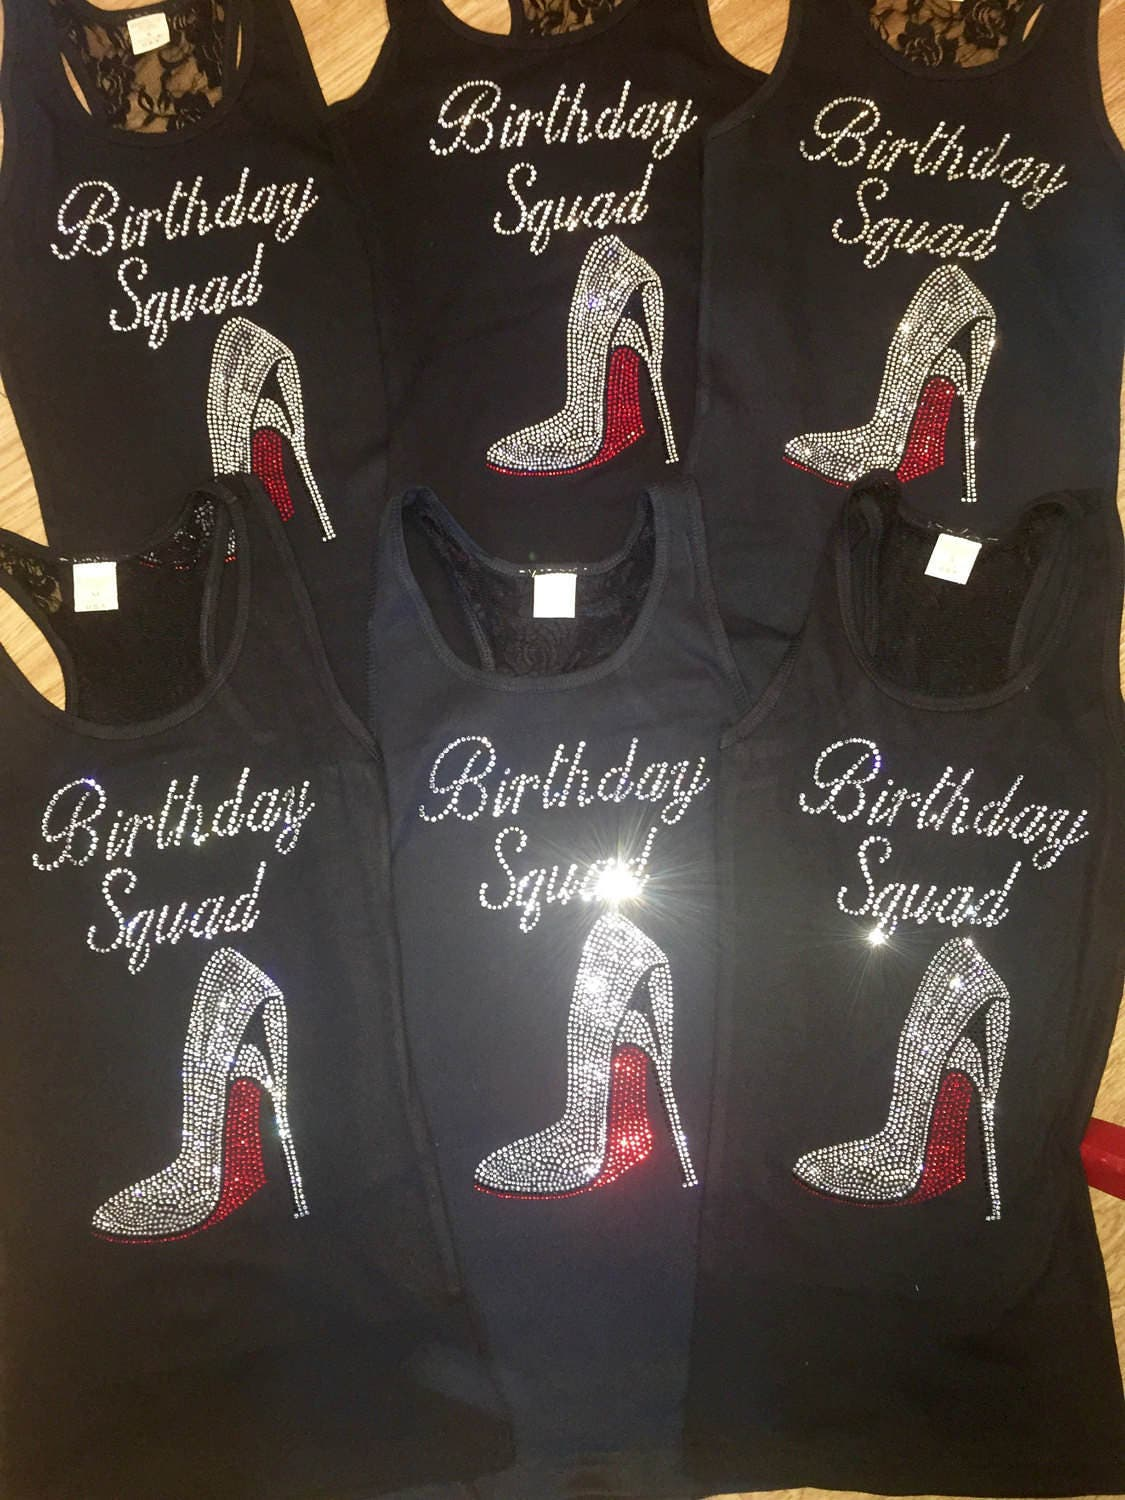 5 6 7 8 Birthday Squad Shirts Ladies T Stellito Tank Tops Tees Nashville